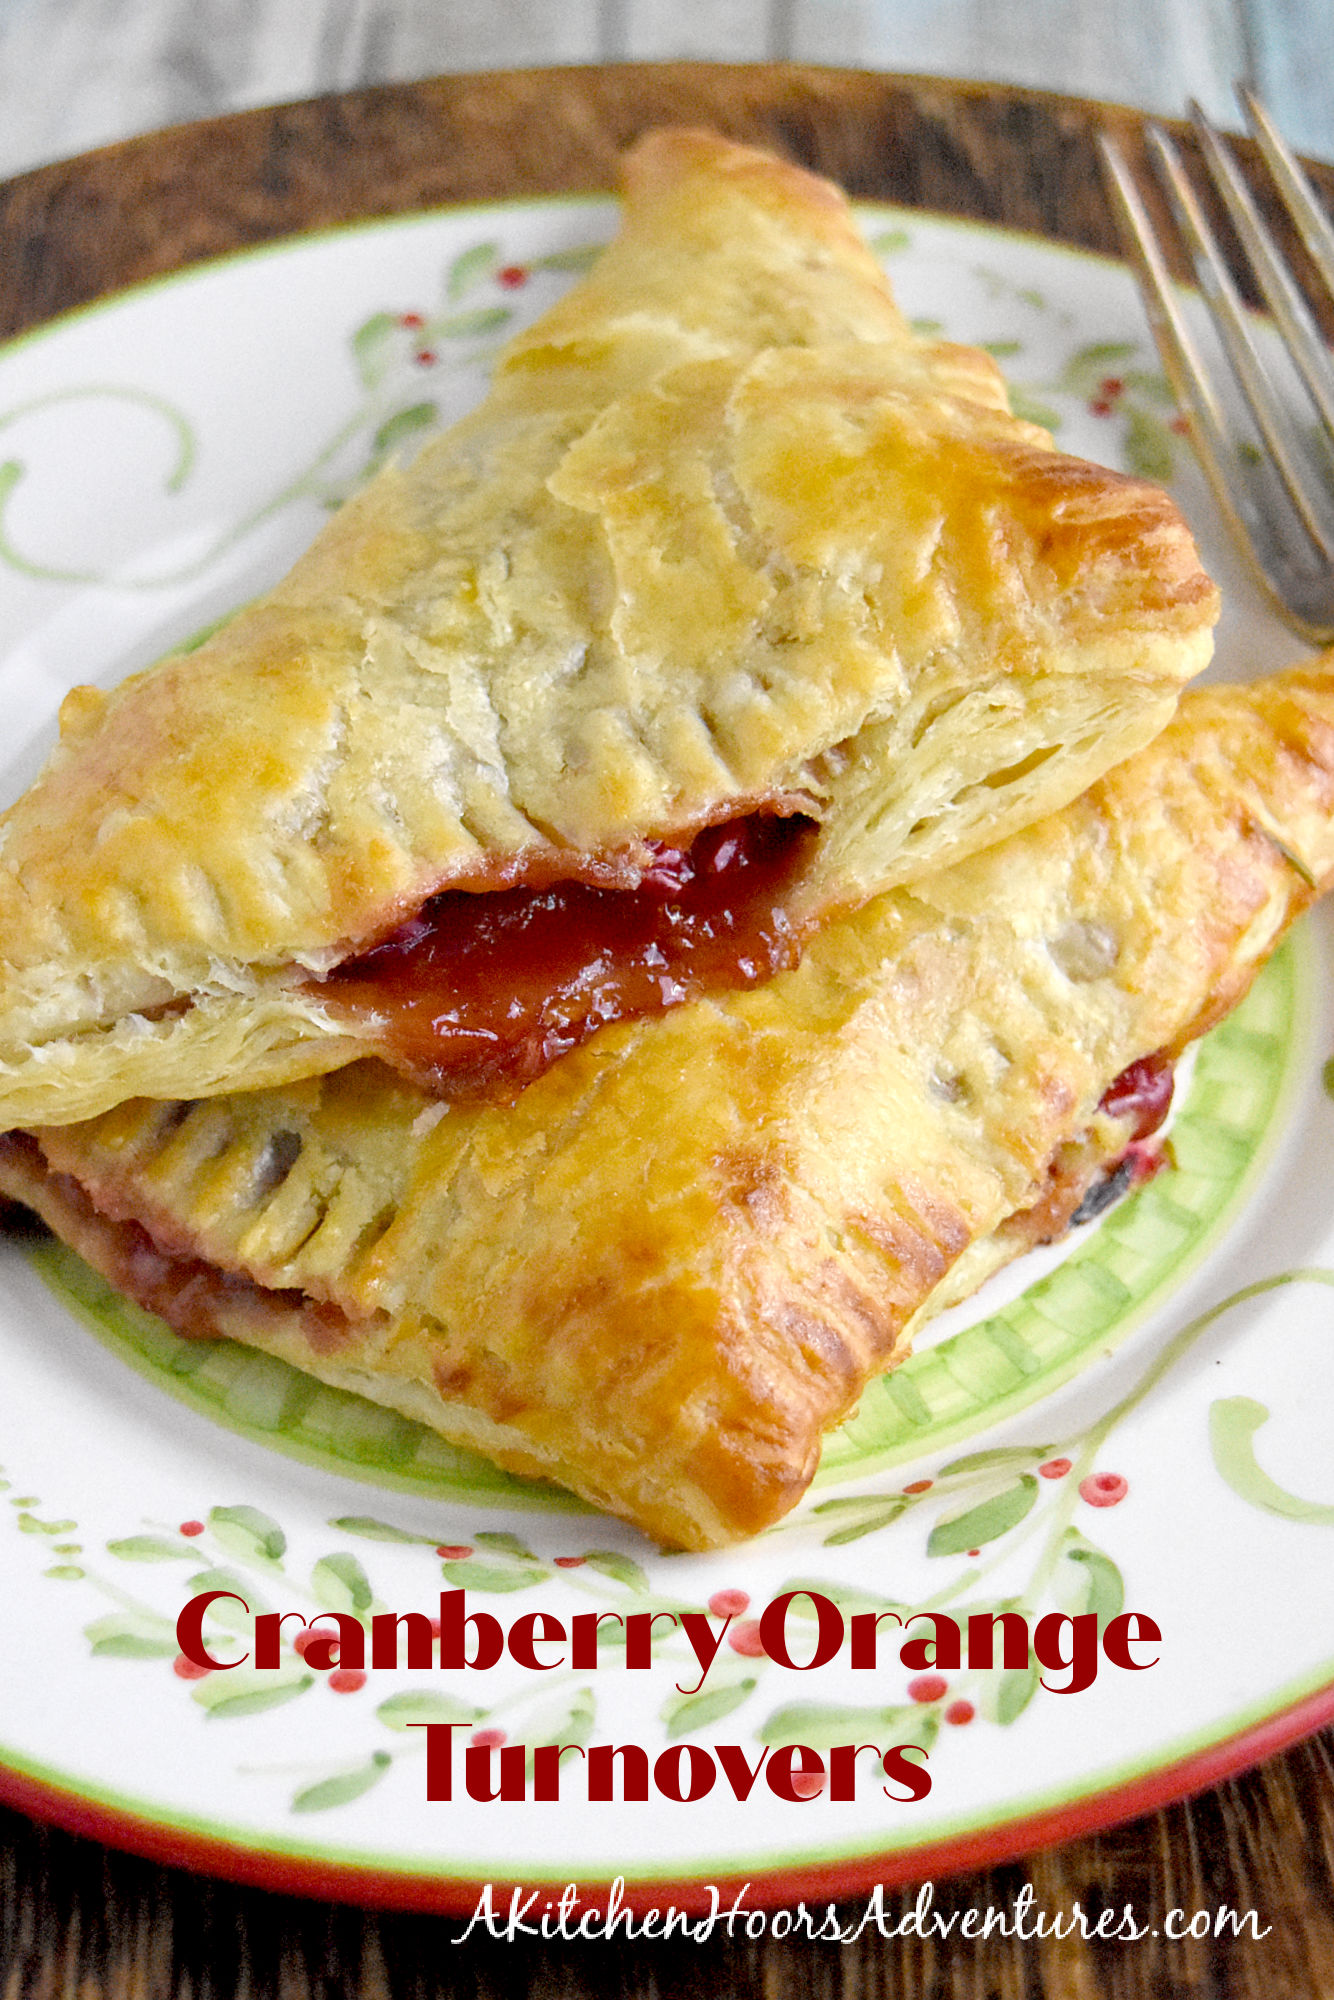 Cranberry Orange Turnovers are slightly sweet, slightly tart, and totally delicious! Made with puff pastry, they whip up in no time for a delicious dessert on the quick. #CranberryWeek